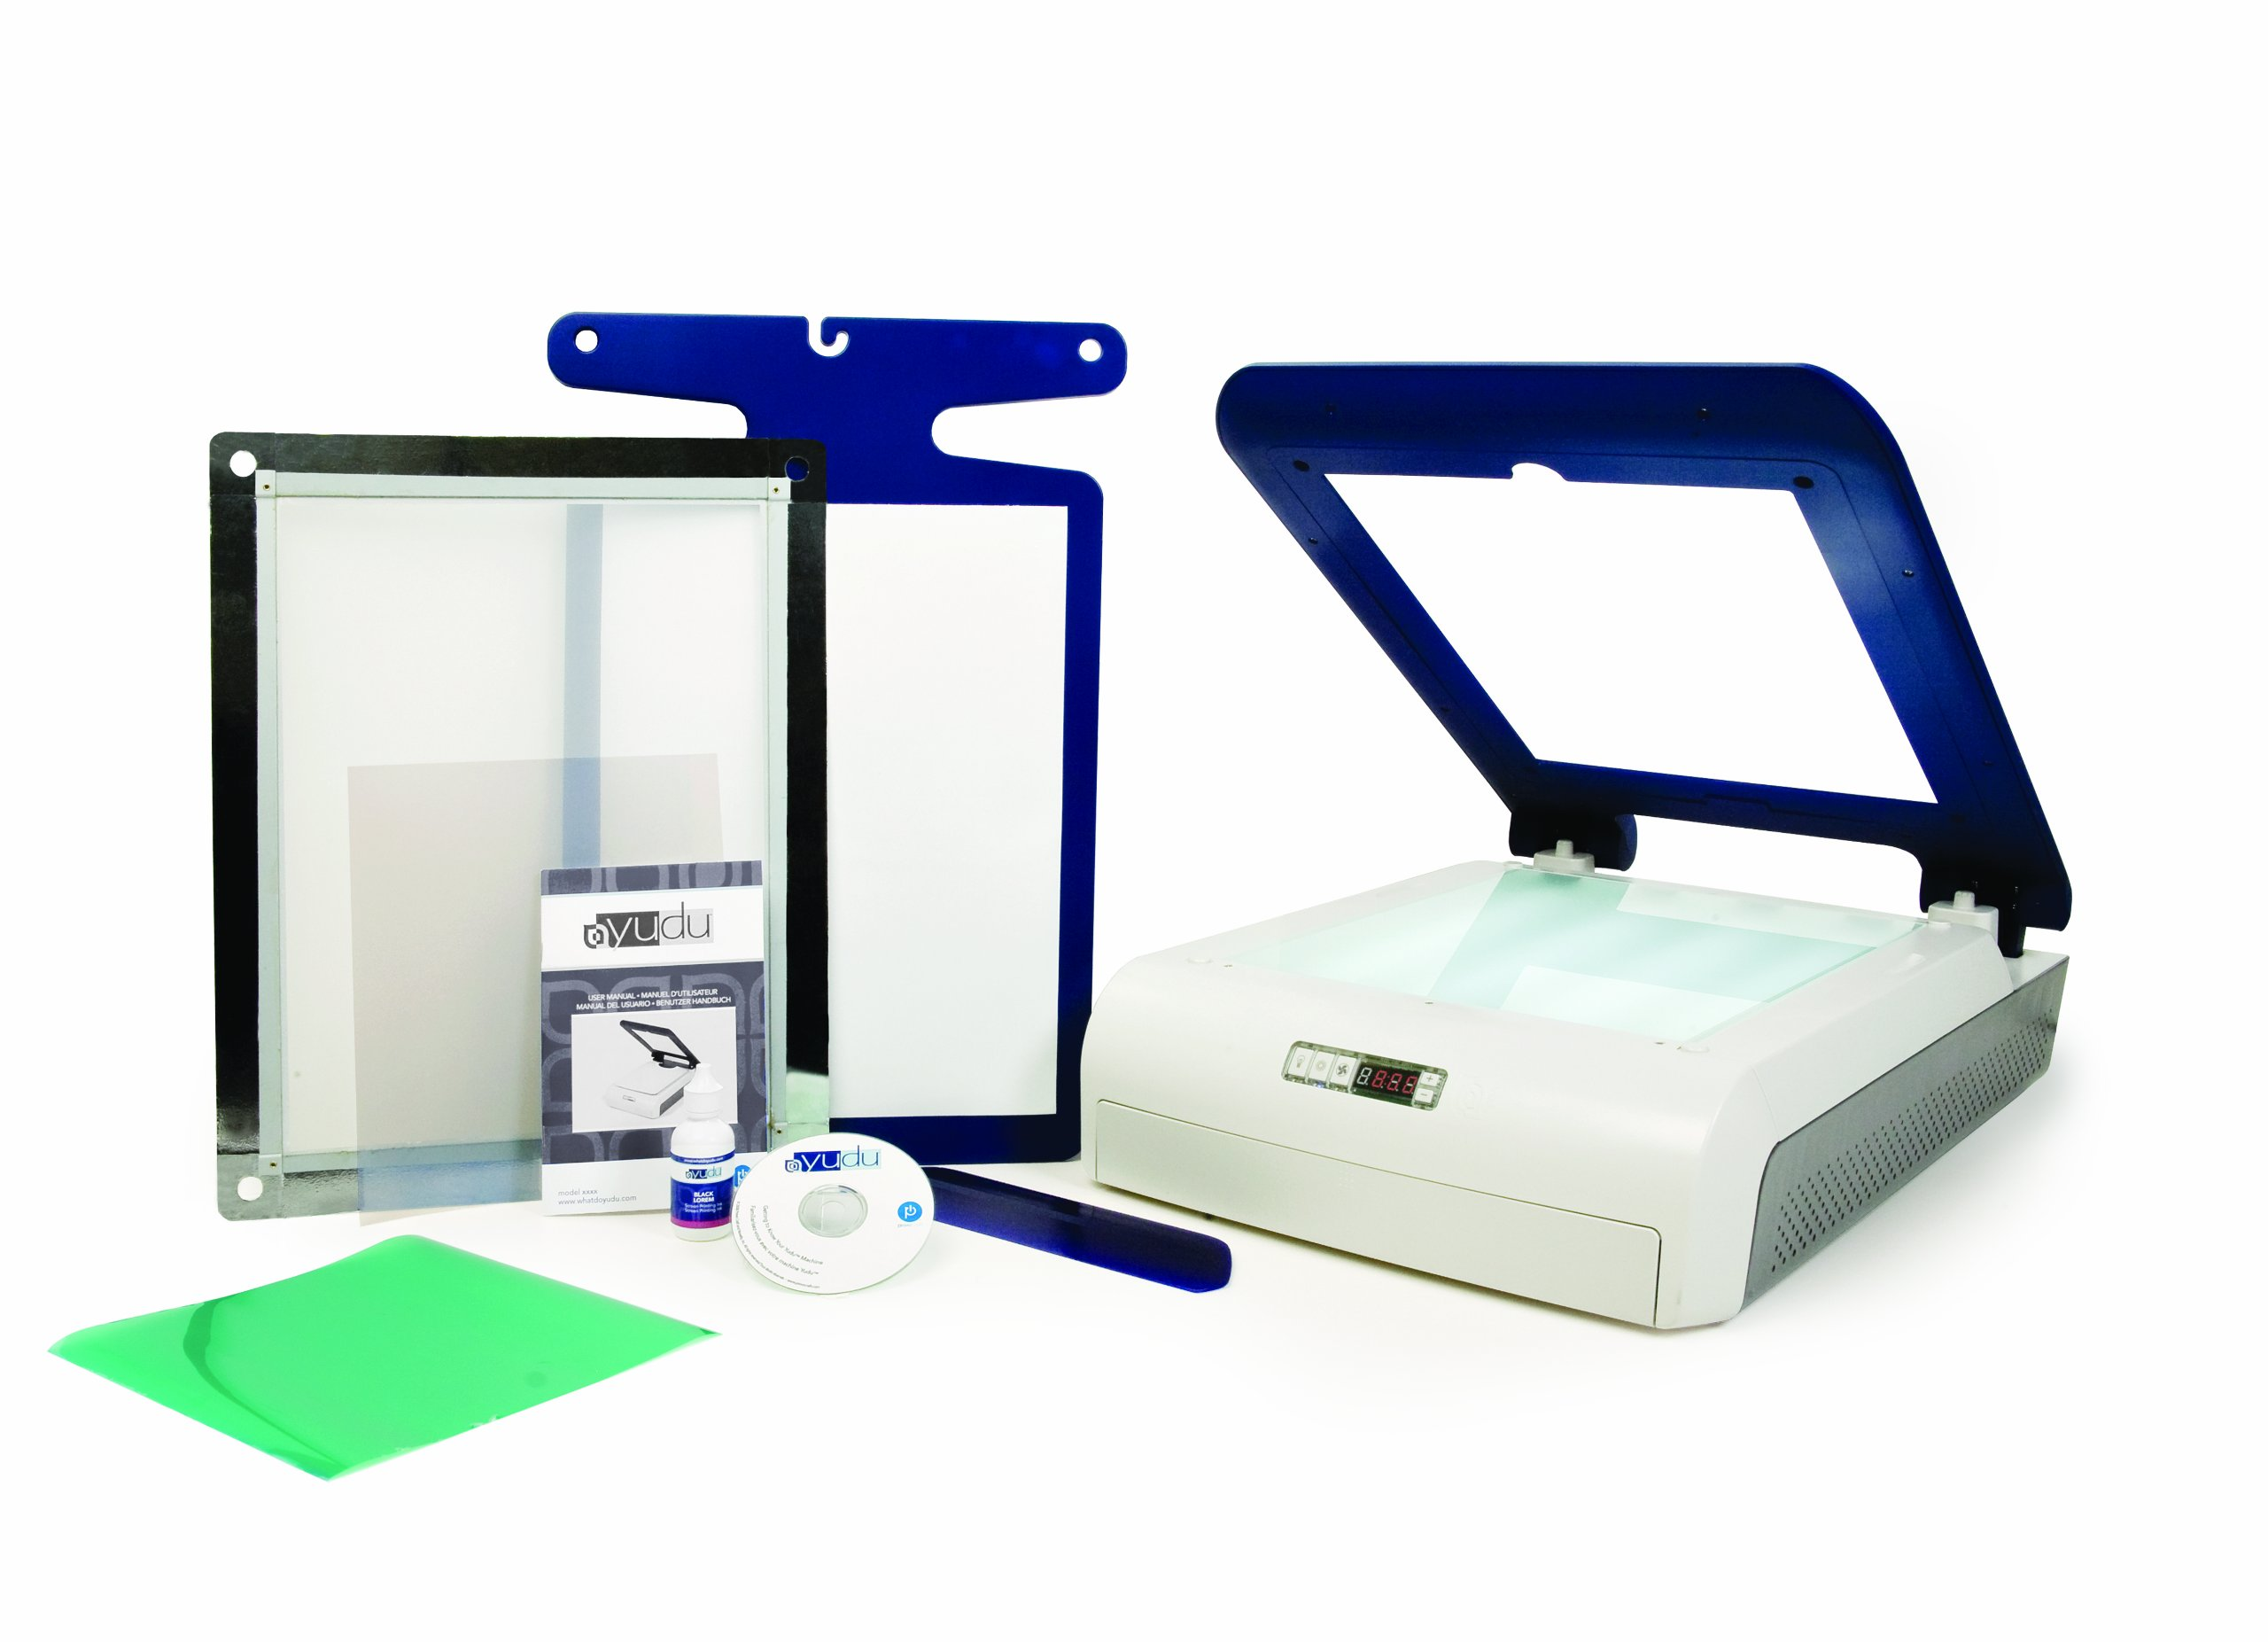 Yudu Personal Screen Printer by Provo Craft & Novelty/ yudu